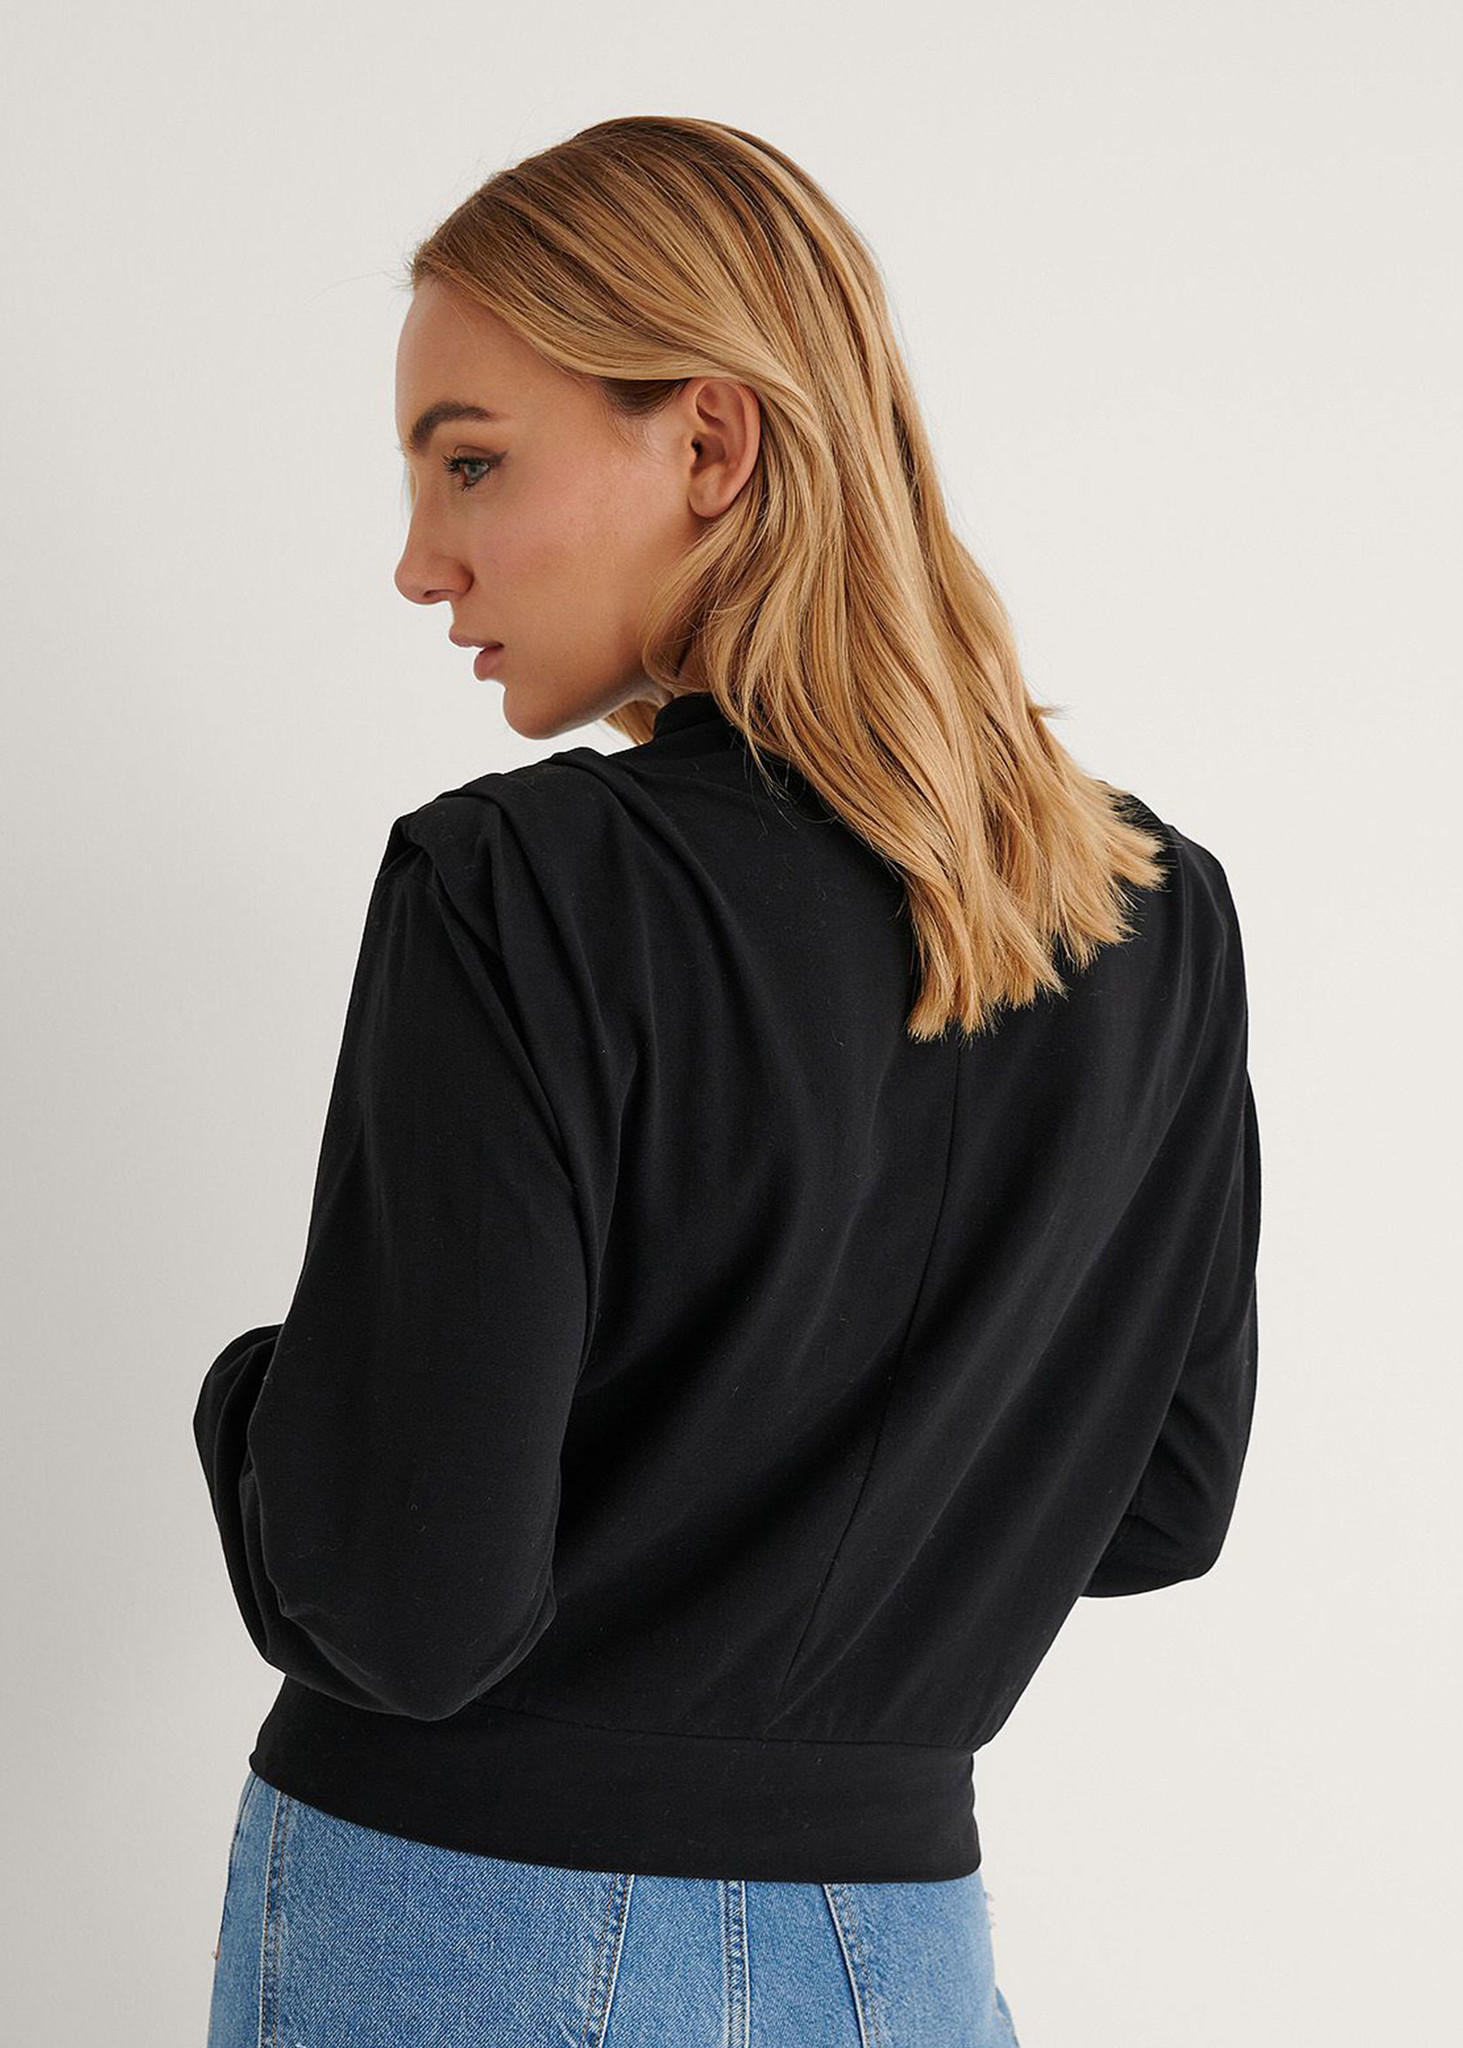 Pleated Detail Sweater Black-3